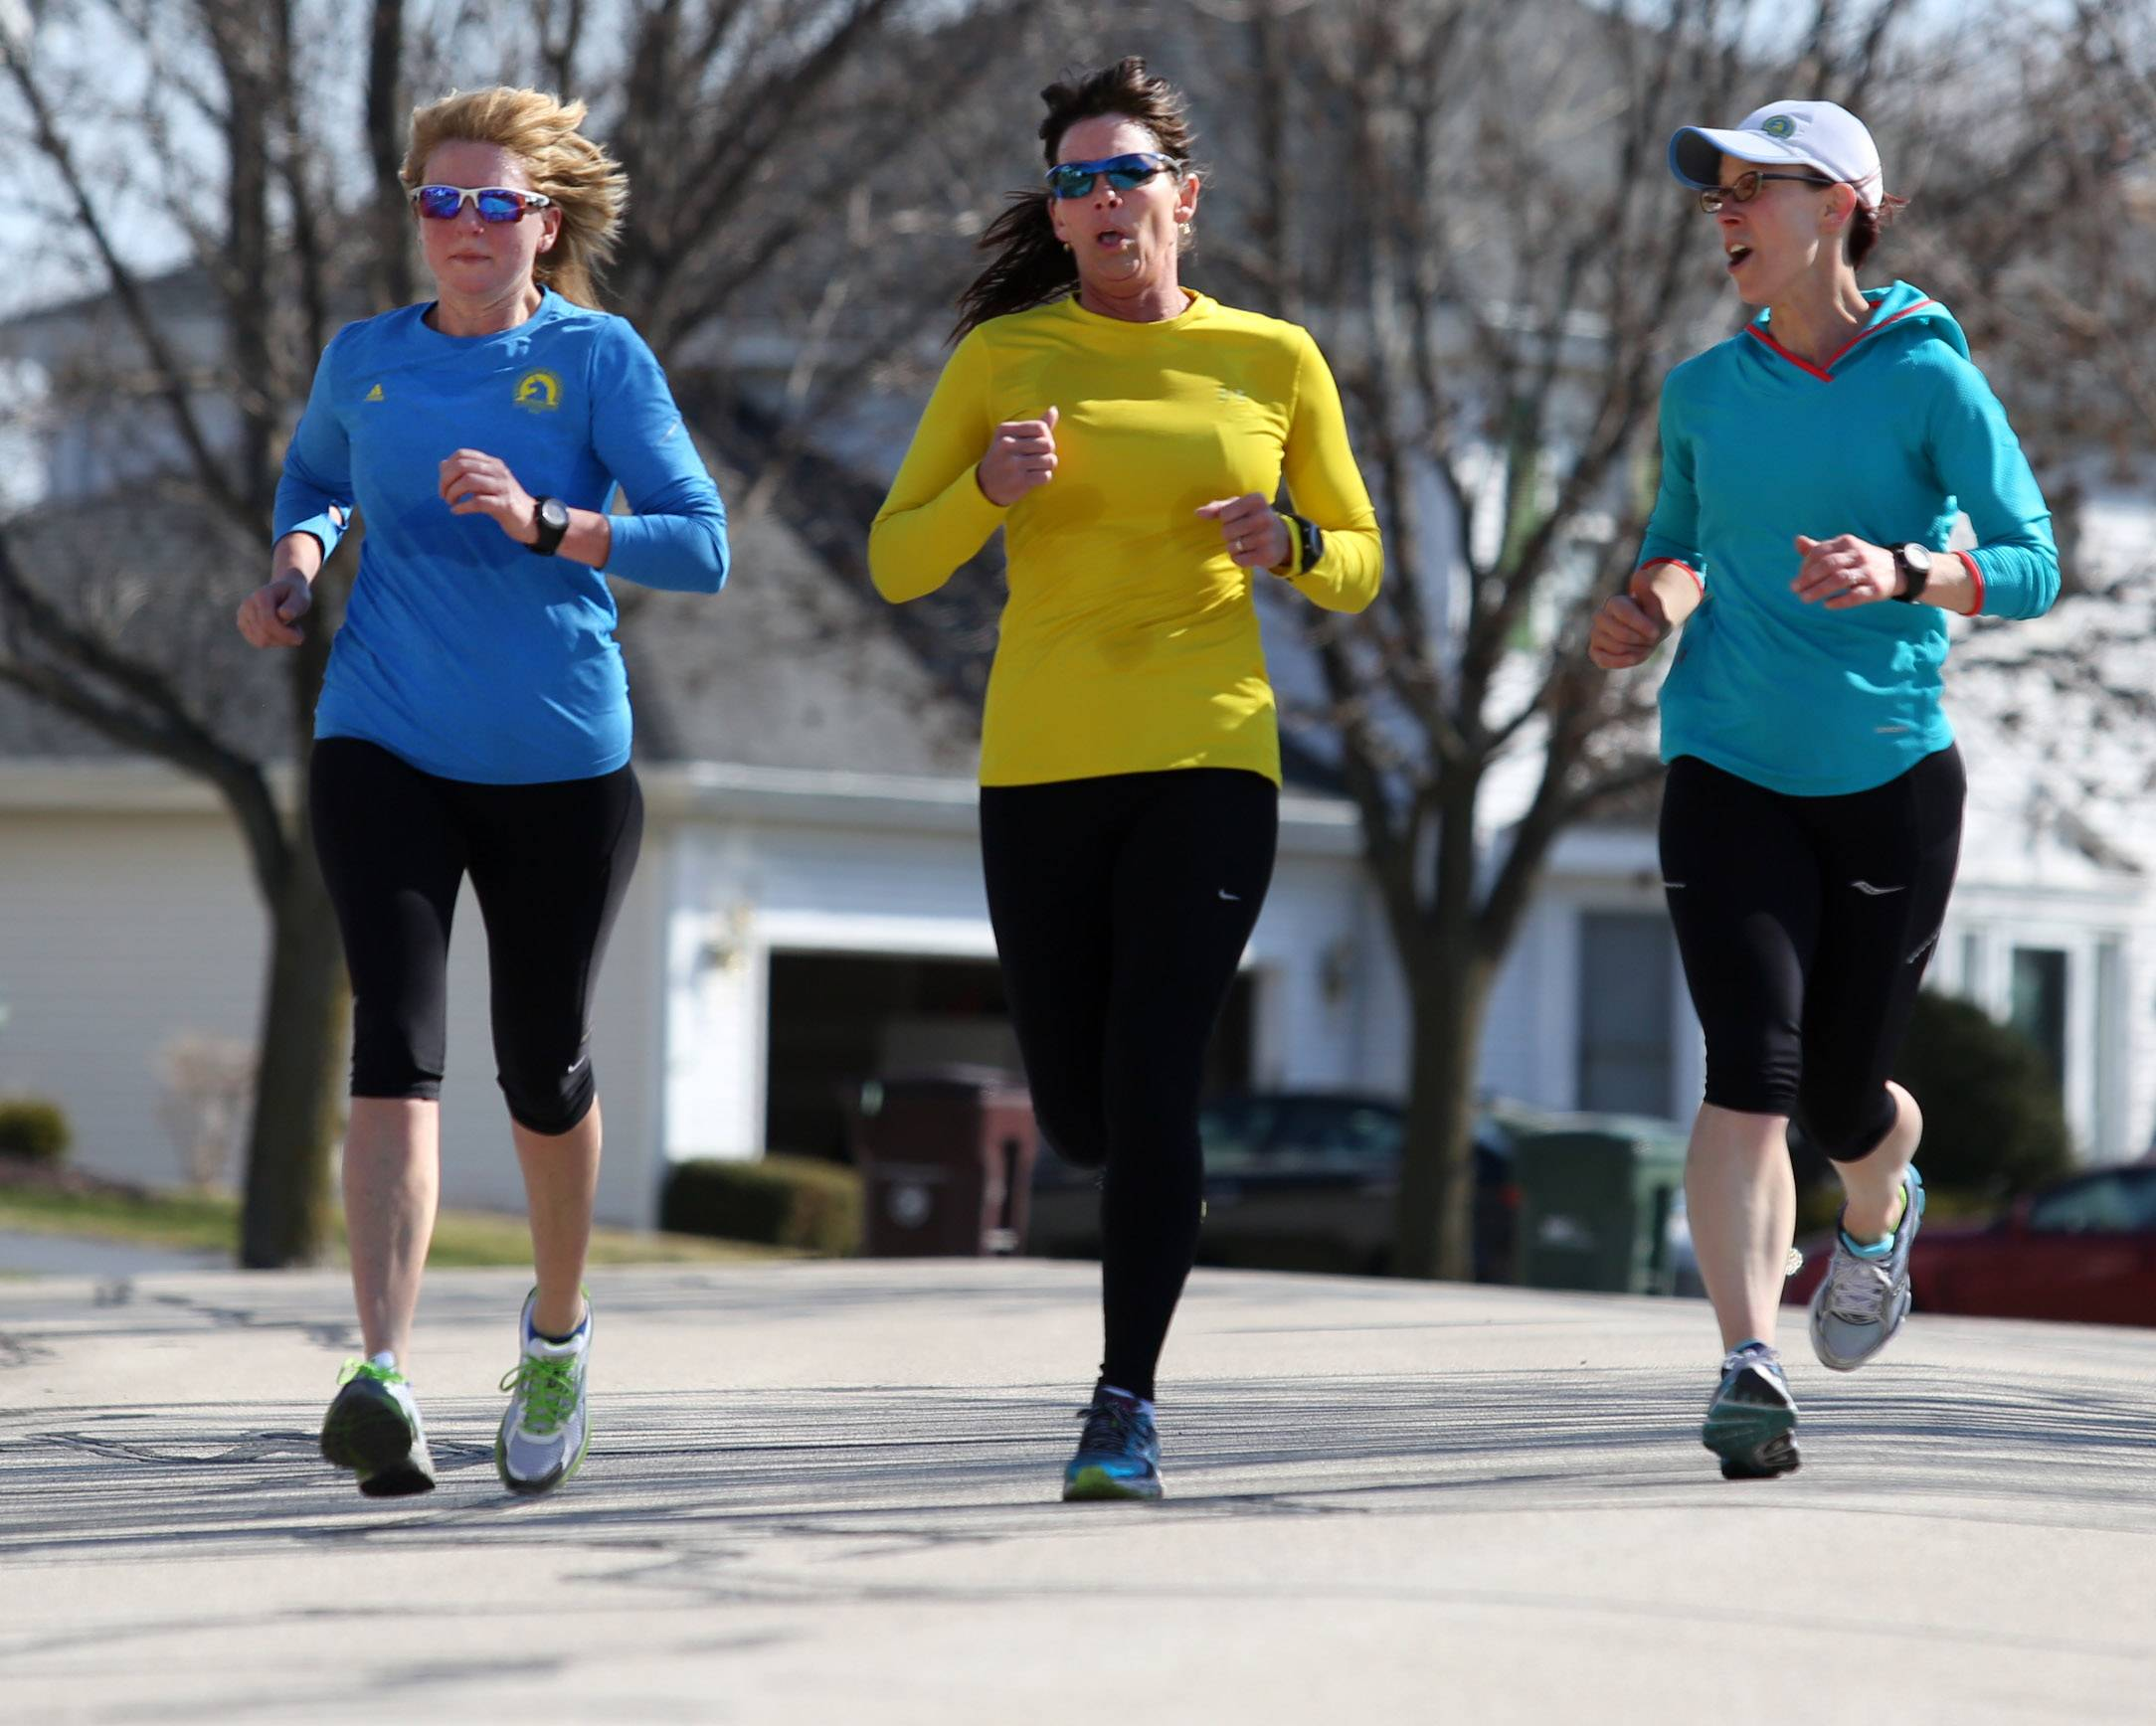 From left, Brenda Zeck of Third Lake, Sue Balthazor of Gurnee and Lisa Strong of Grayslake take a training run near Gurnee. All three ran the Boston Marathon last year and Zeck and Balthazor will be returning to run it Monday.